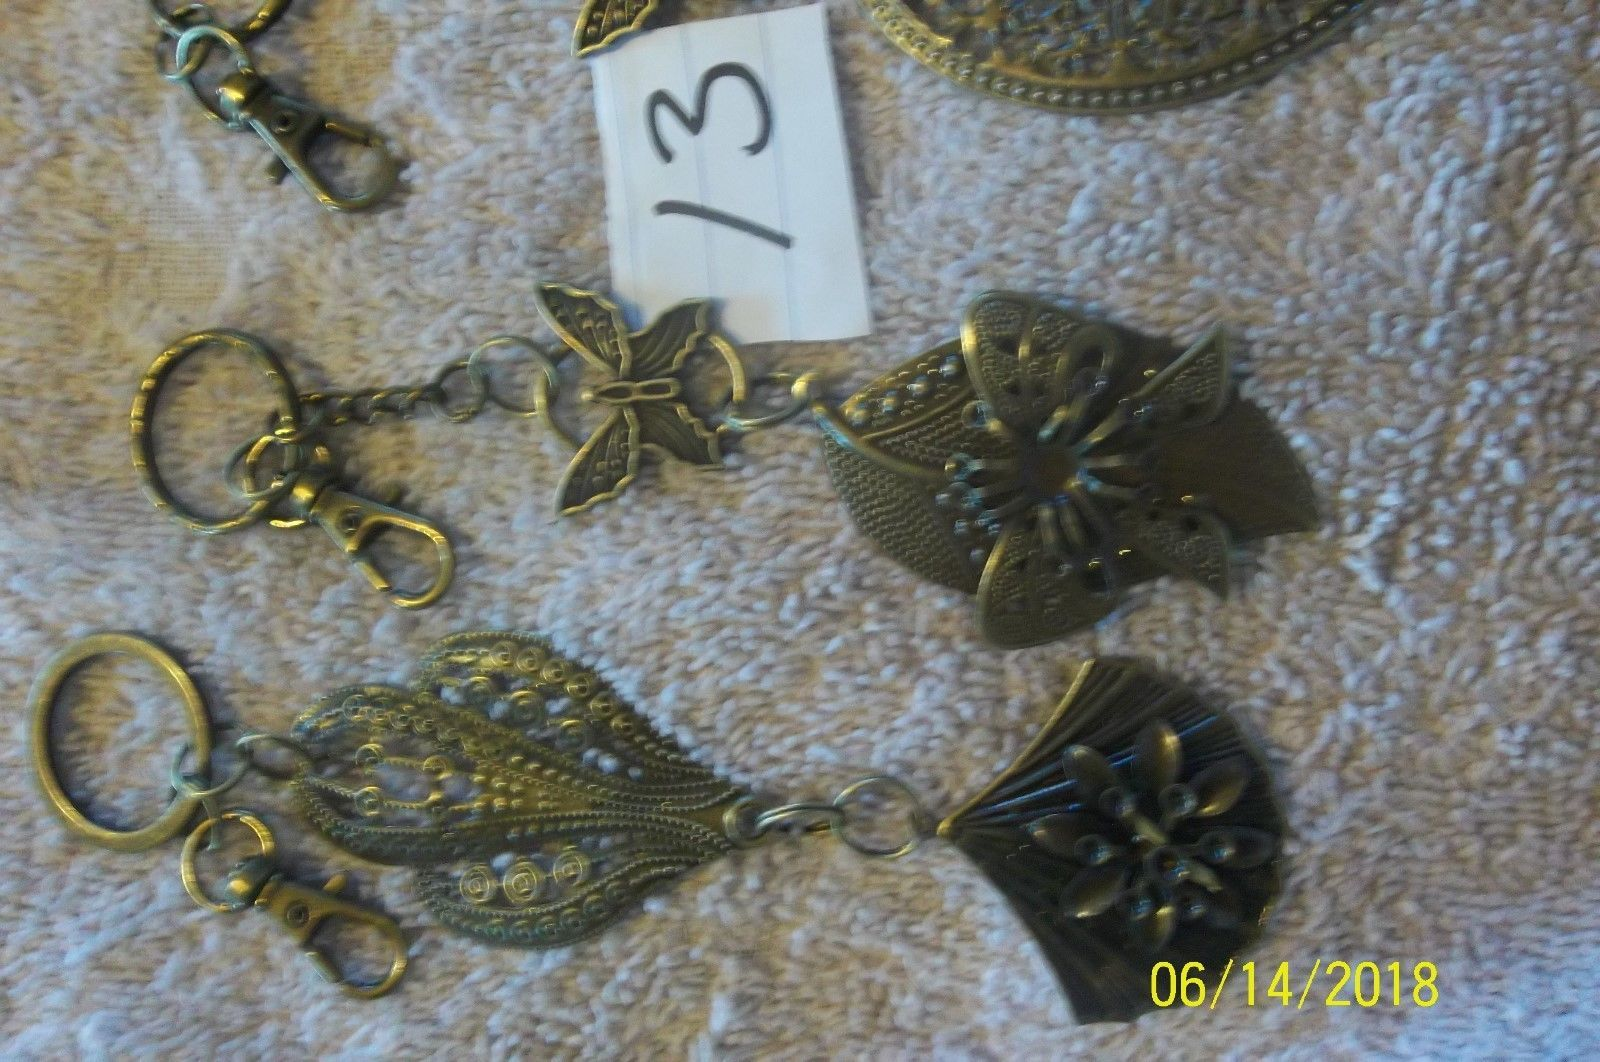 # purse jewelry bronze color keychain backpack dangle charms #13 lot of 3 image 3